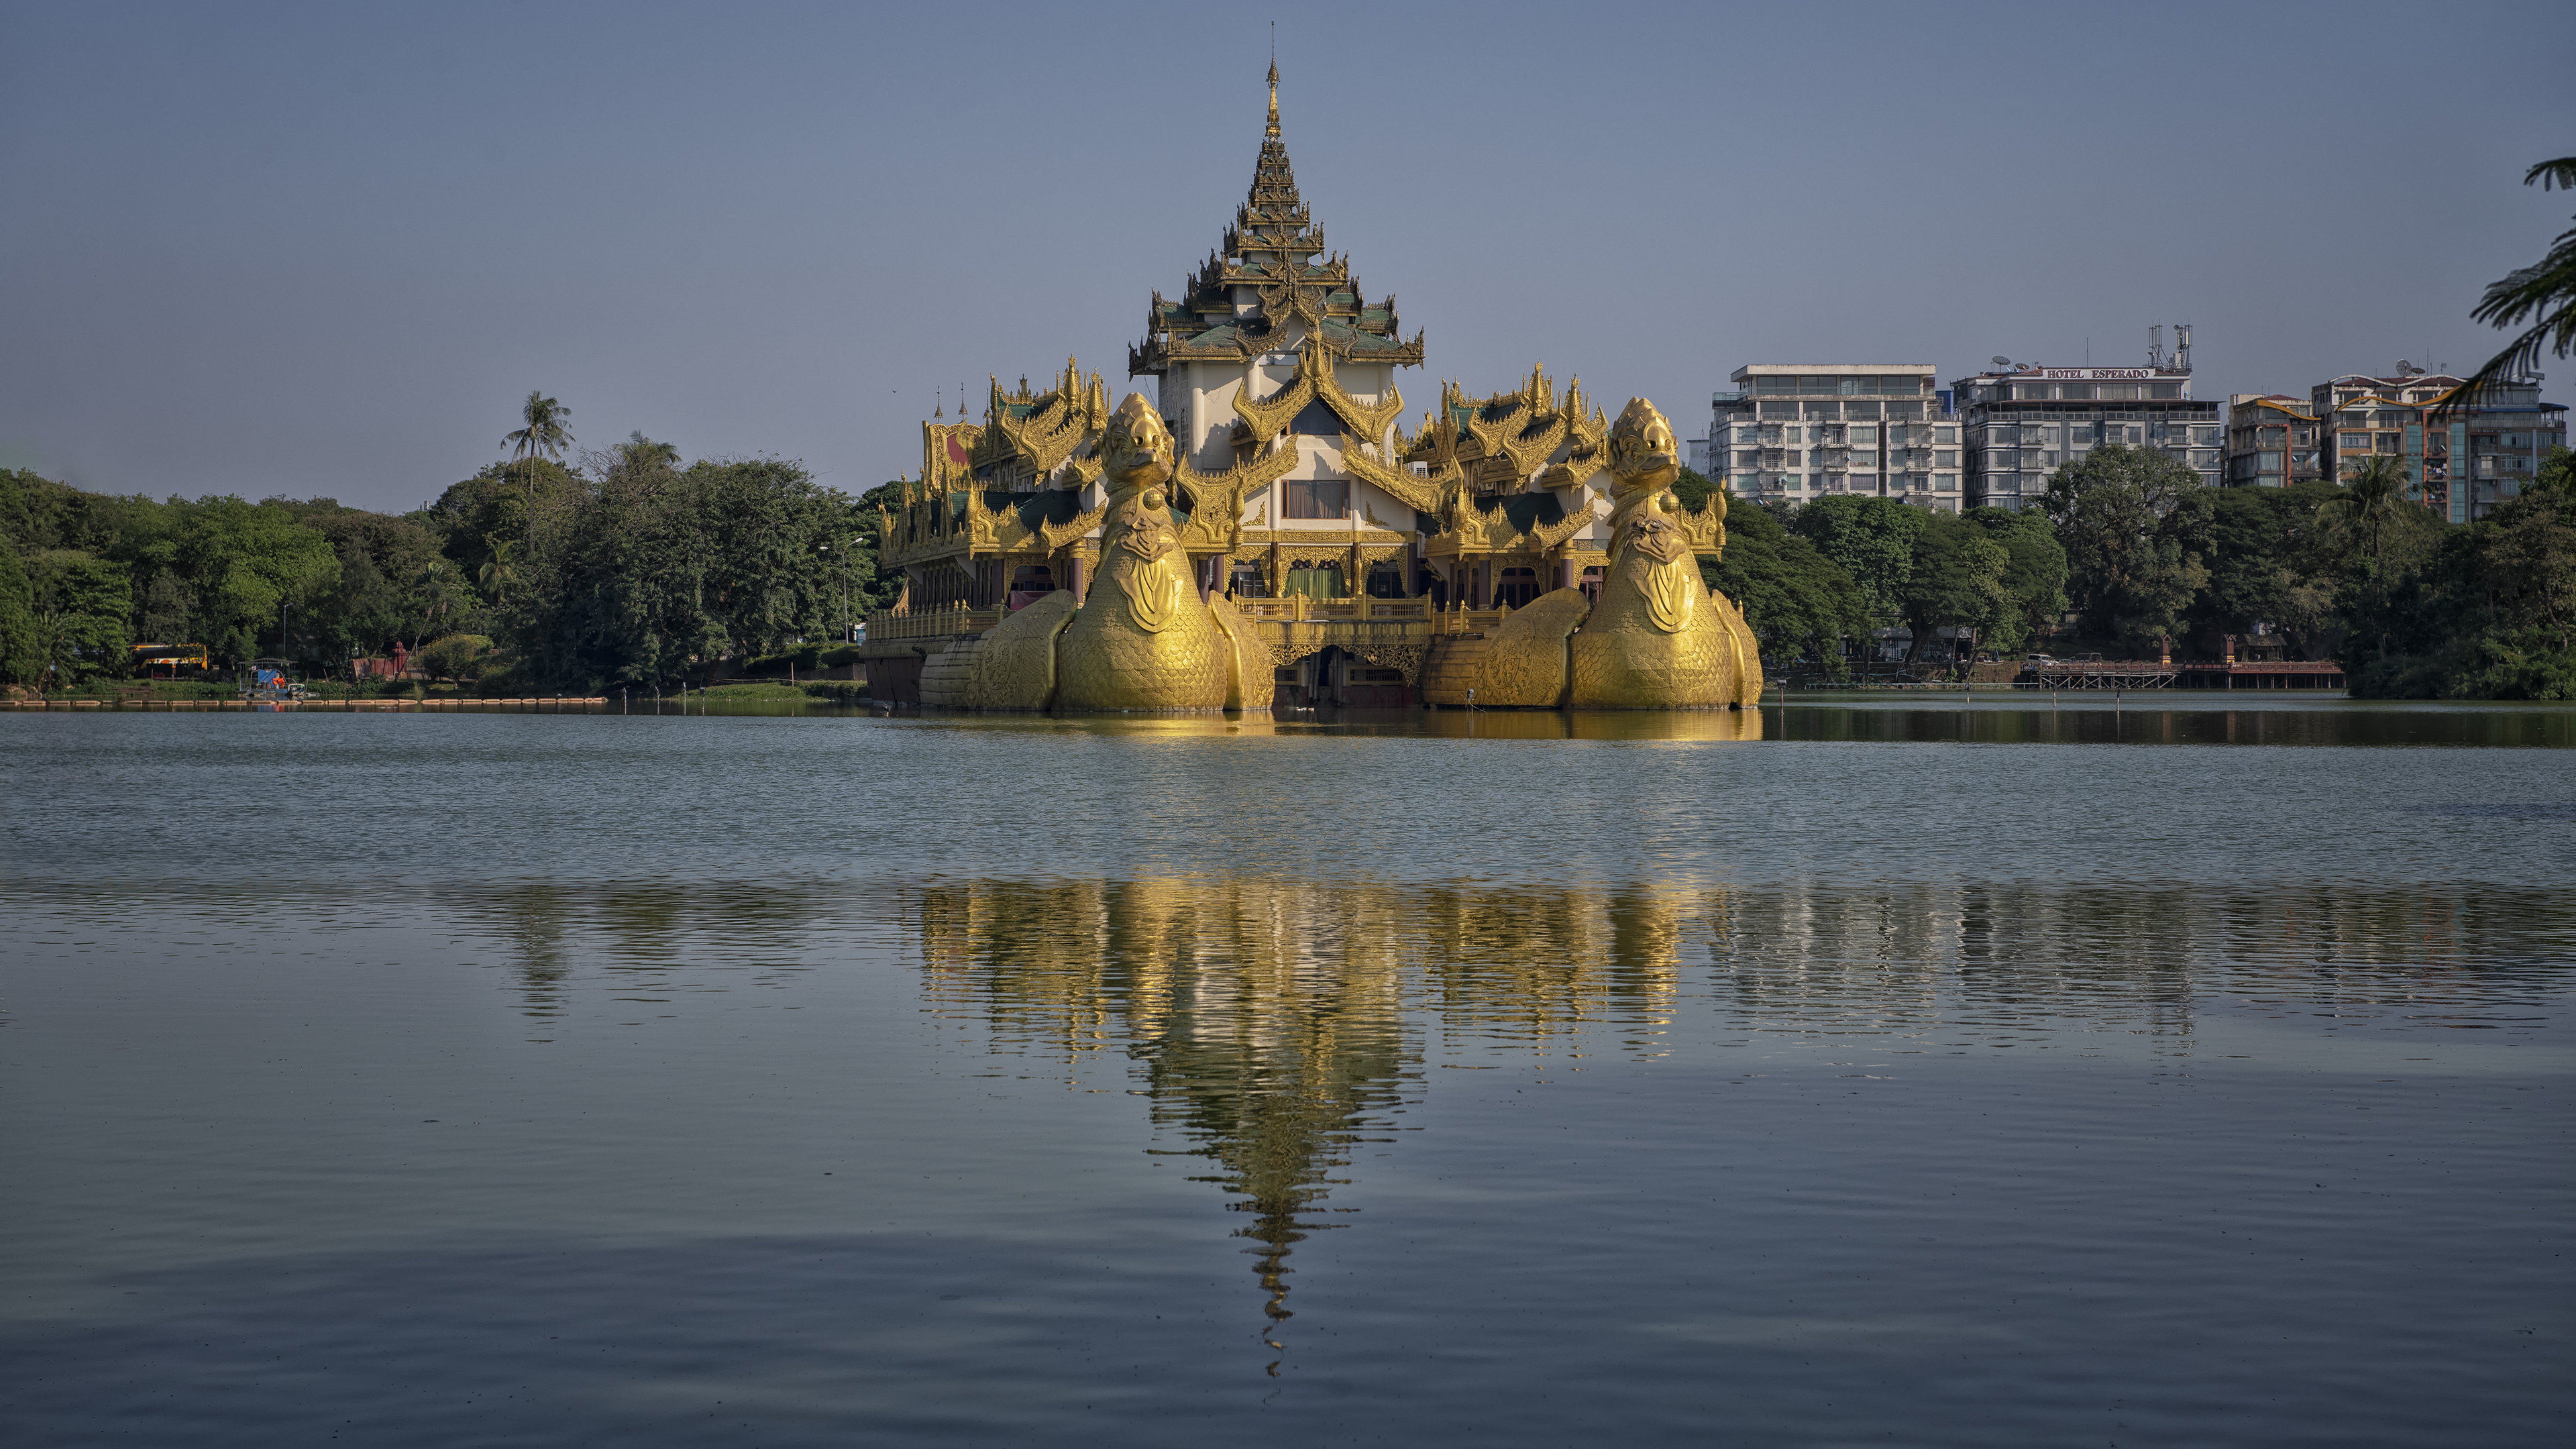 Shwedagon Pagoda on Kandawgyi Lake